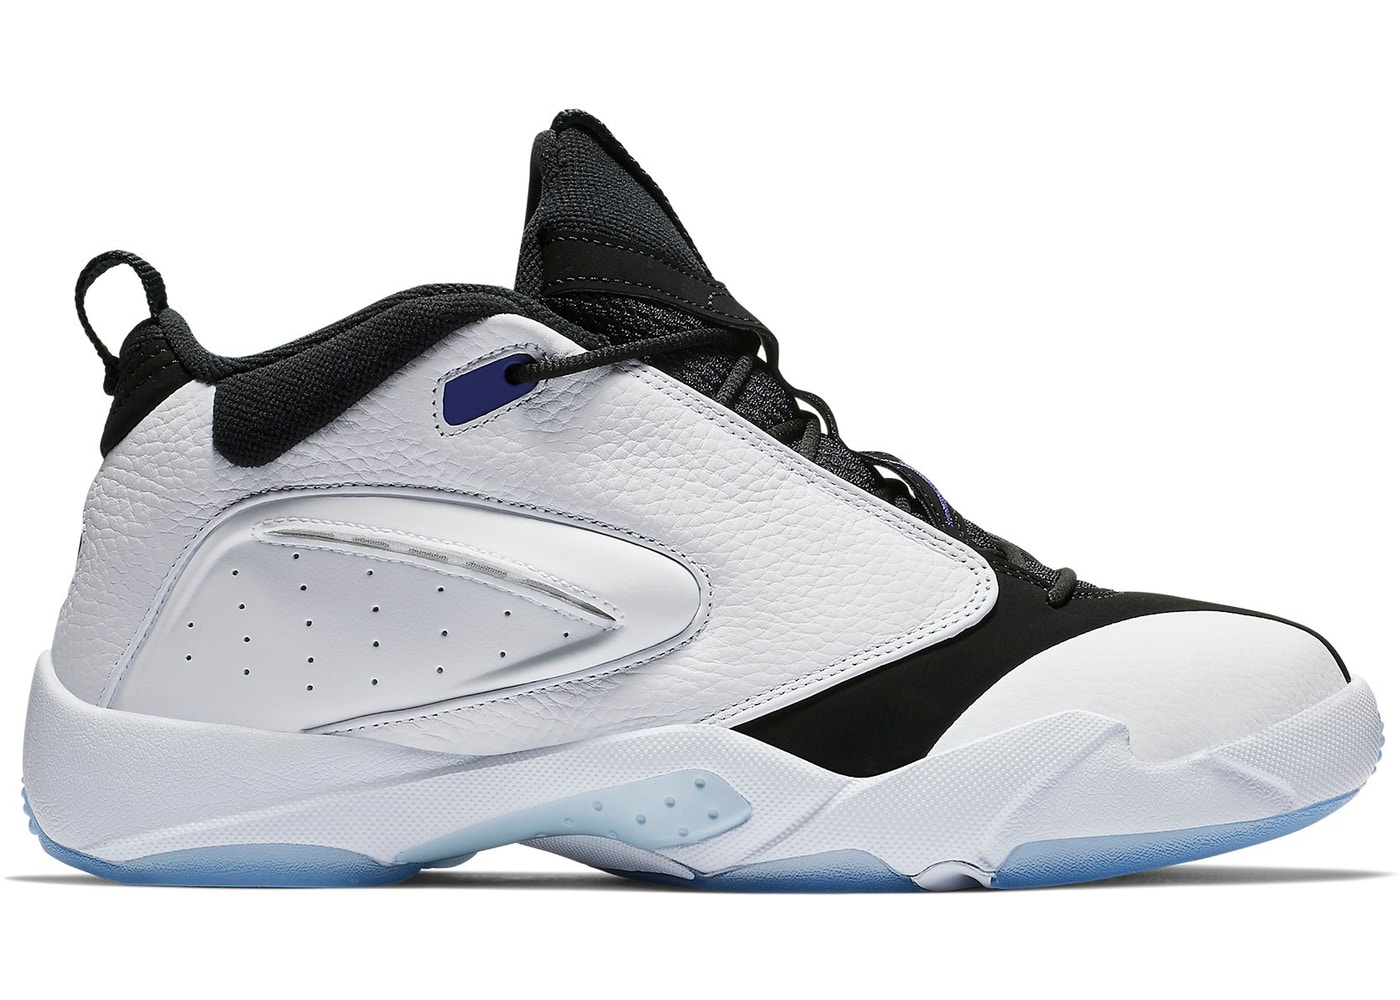 fa1f465aab6e Sell. or Ask. Size --. View All Bids. Jordan Jumpman Quick 23 Concord